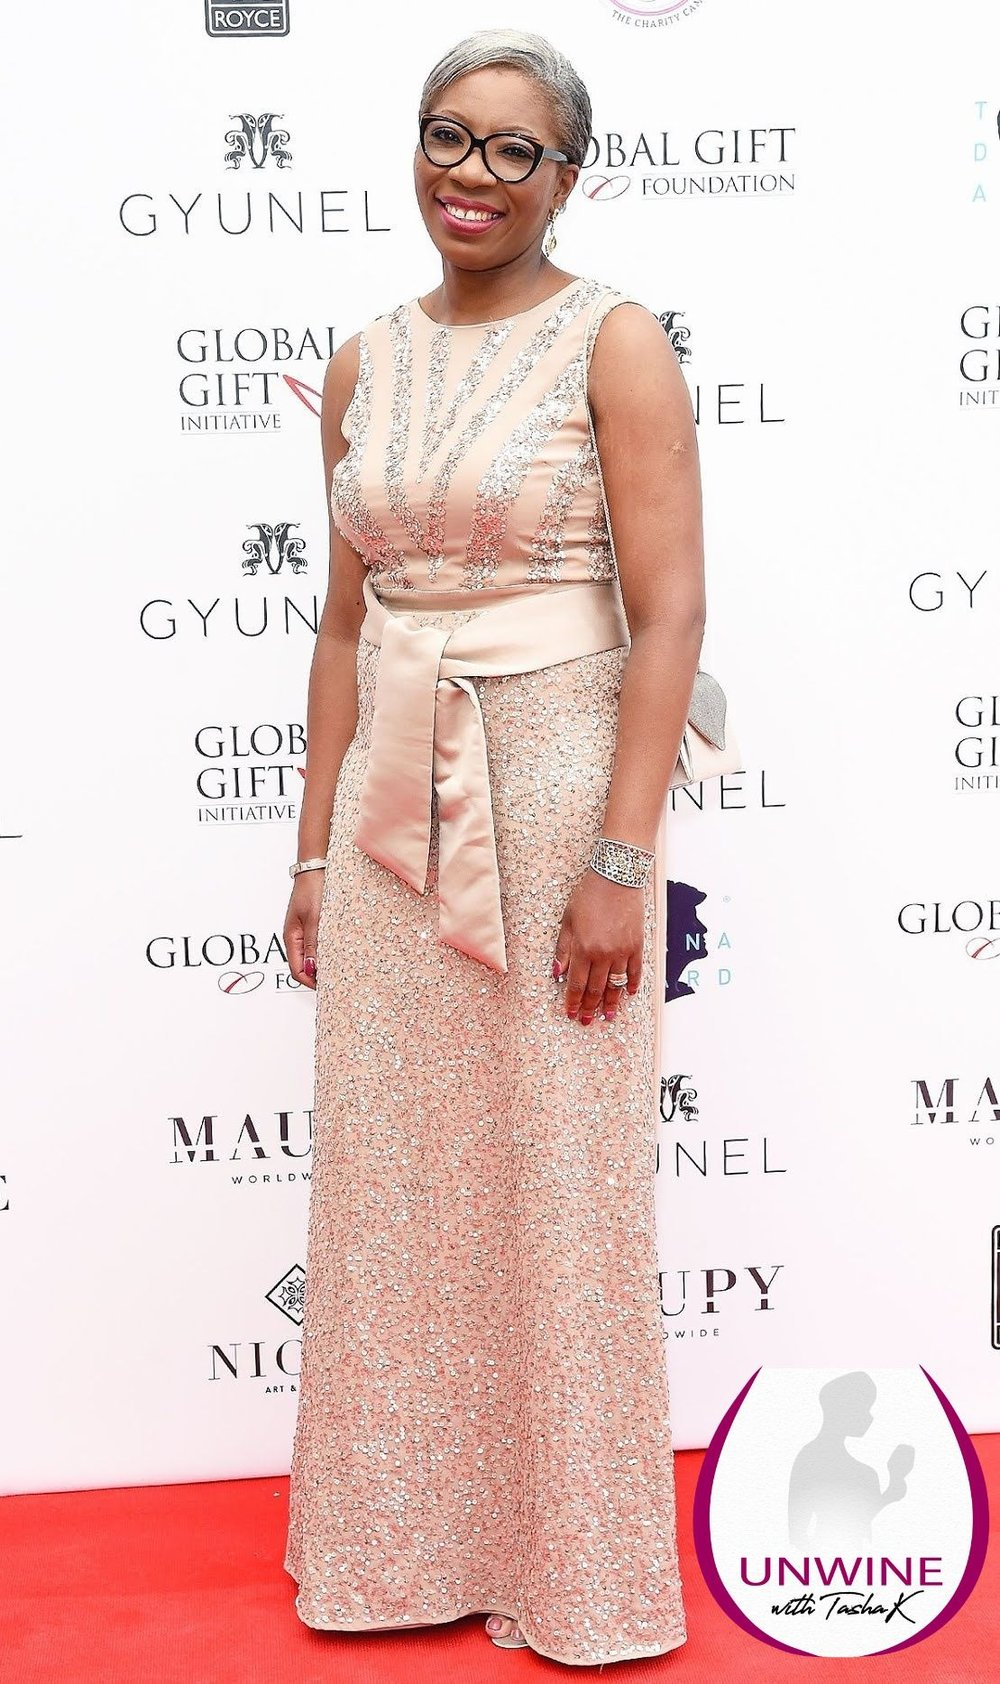 Doria Ragland, Meghan Markle's mother.